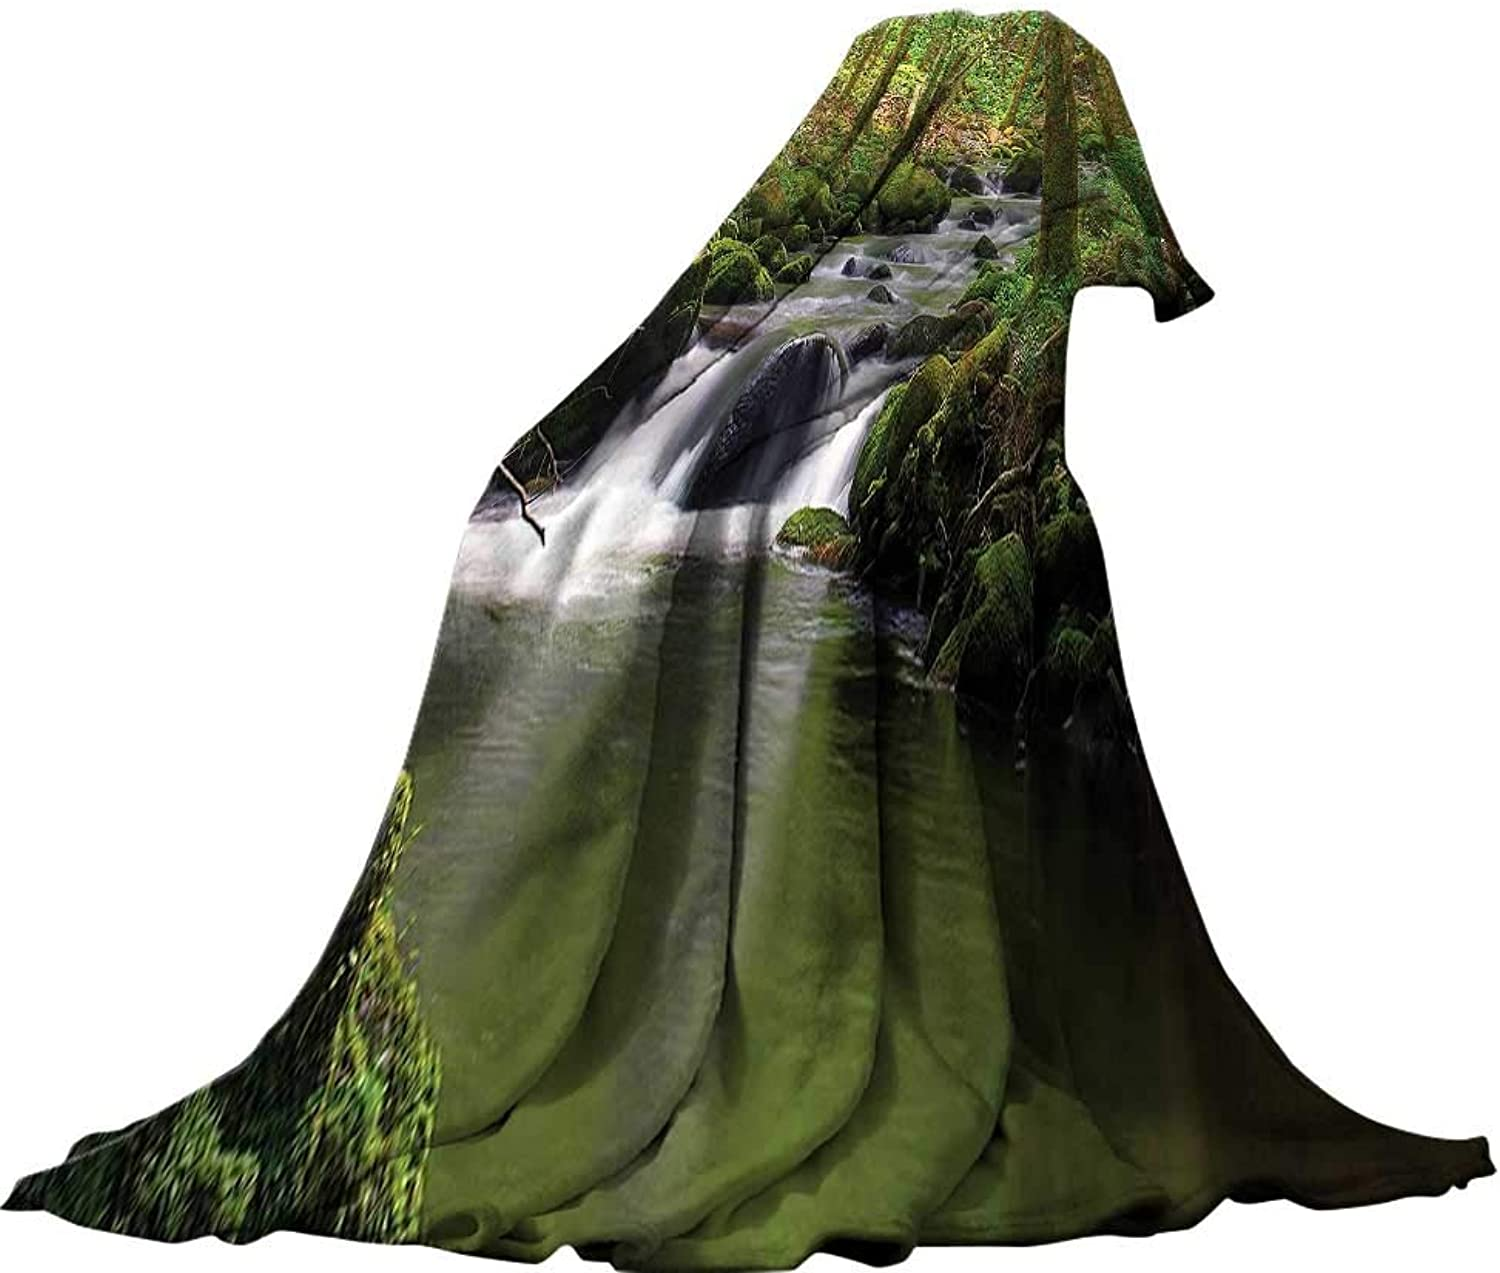 QINYAN-Home Warm Microfiber All Season Blanket (60 x60 ) Summer Quilt Comforter Lake House Decor Stream Flowing in The Forest Over Mossy Rocks Tree Foliage Splash Summertime Hiking.